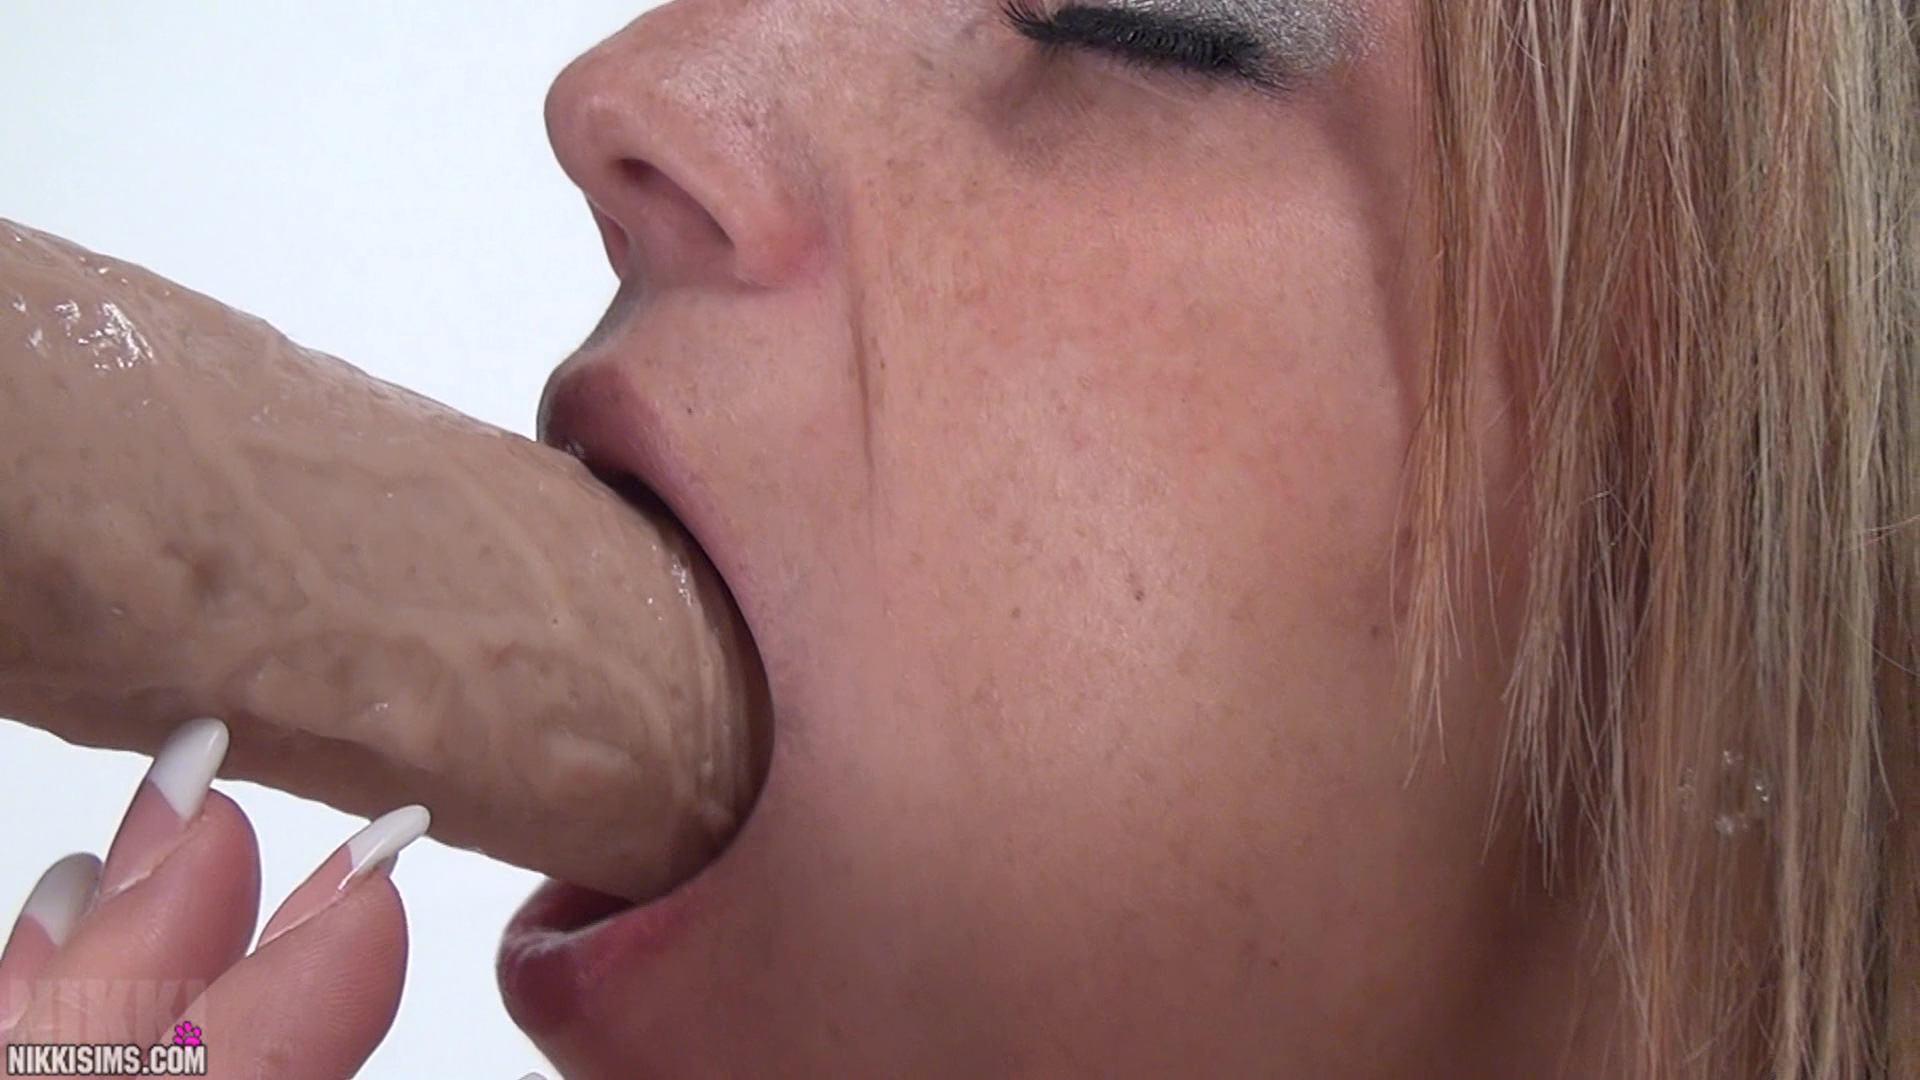 Cumming deep slow dildo attractively